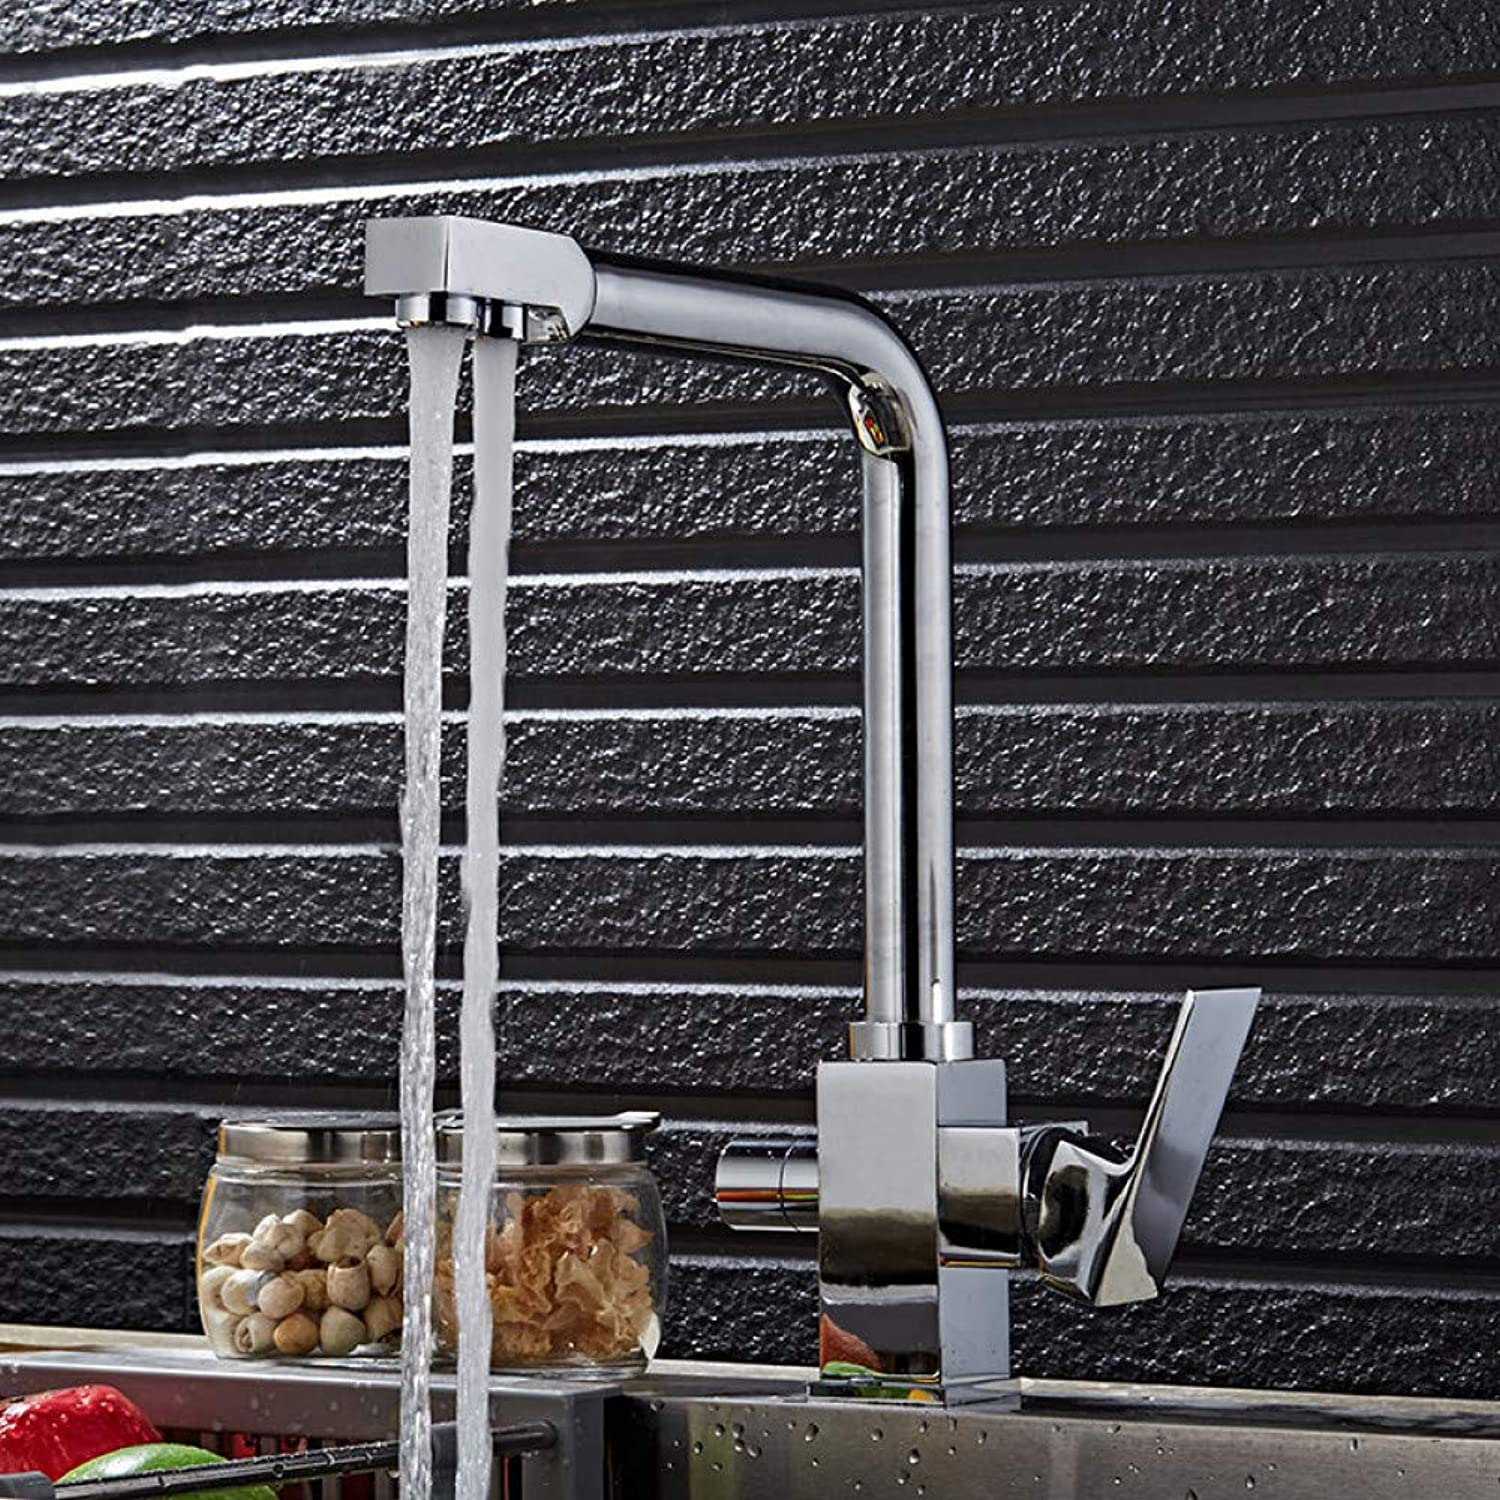 YHSGY Kitchen Taps Kitchen Swivel Hot and Cold Filter Water Faucet Luxury Chrome Finshed